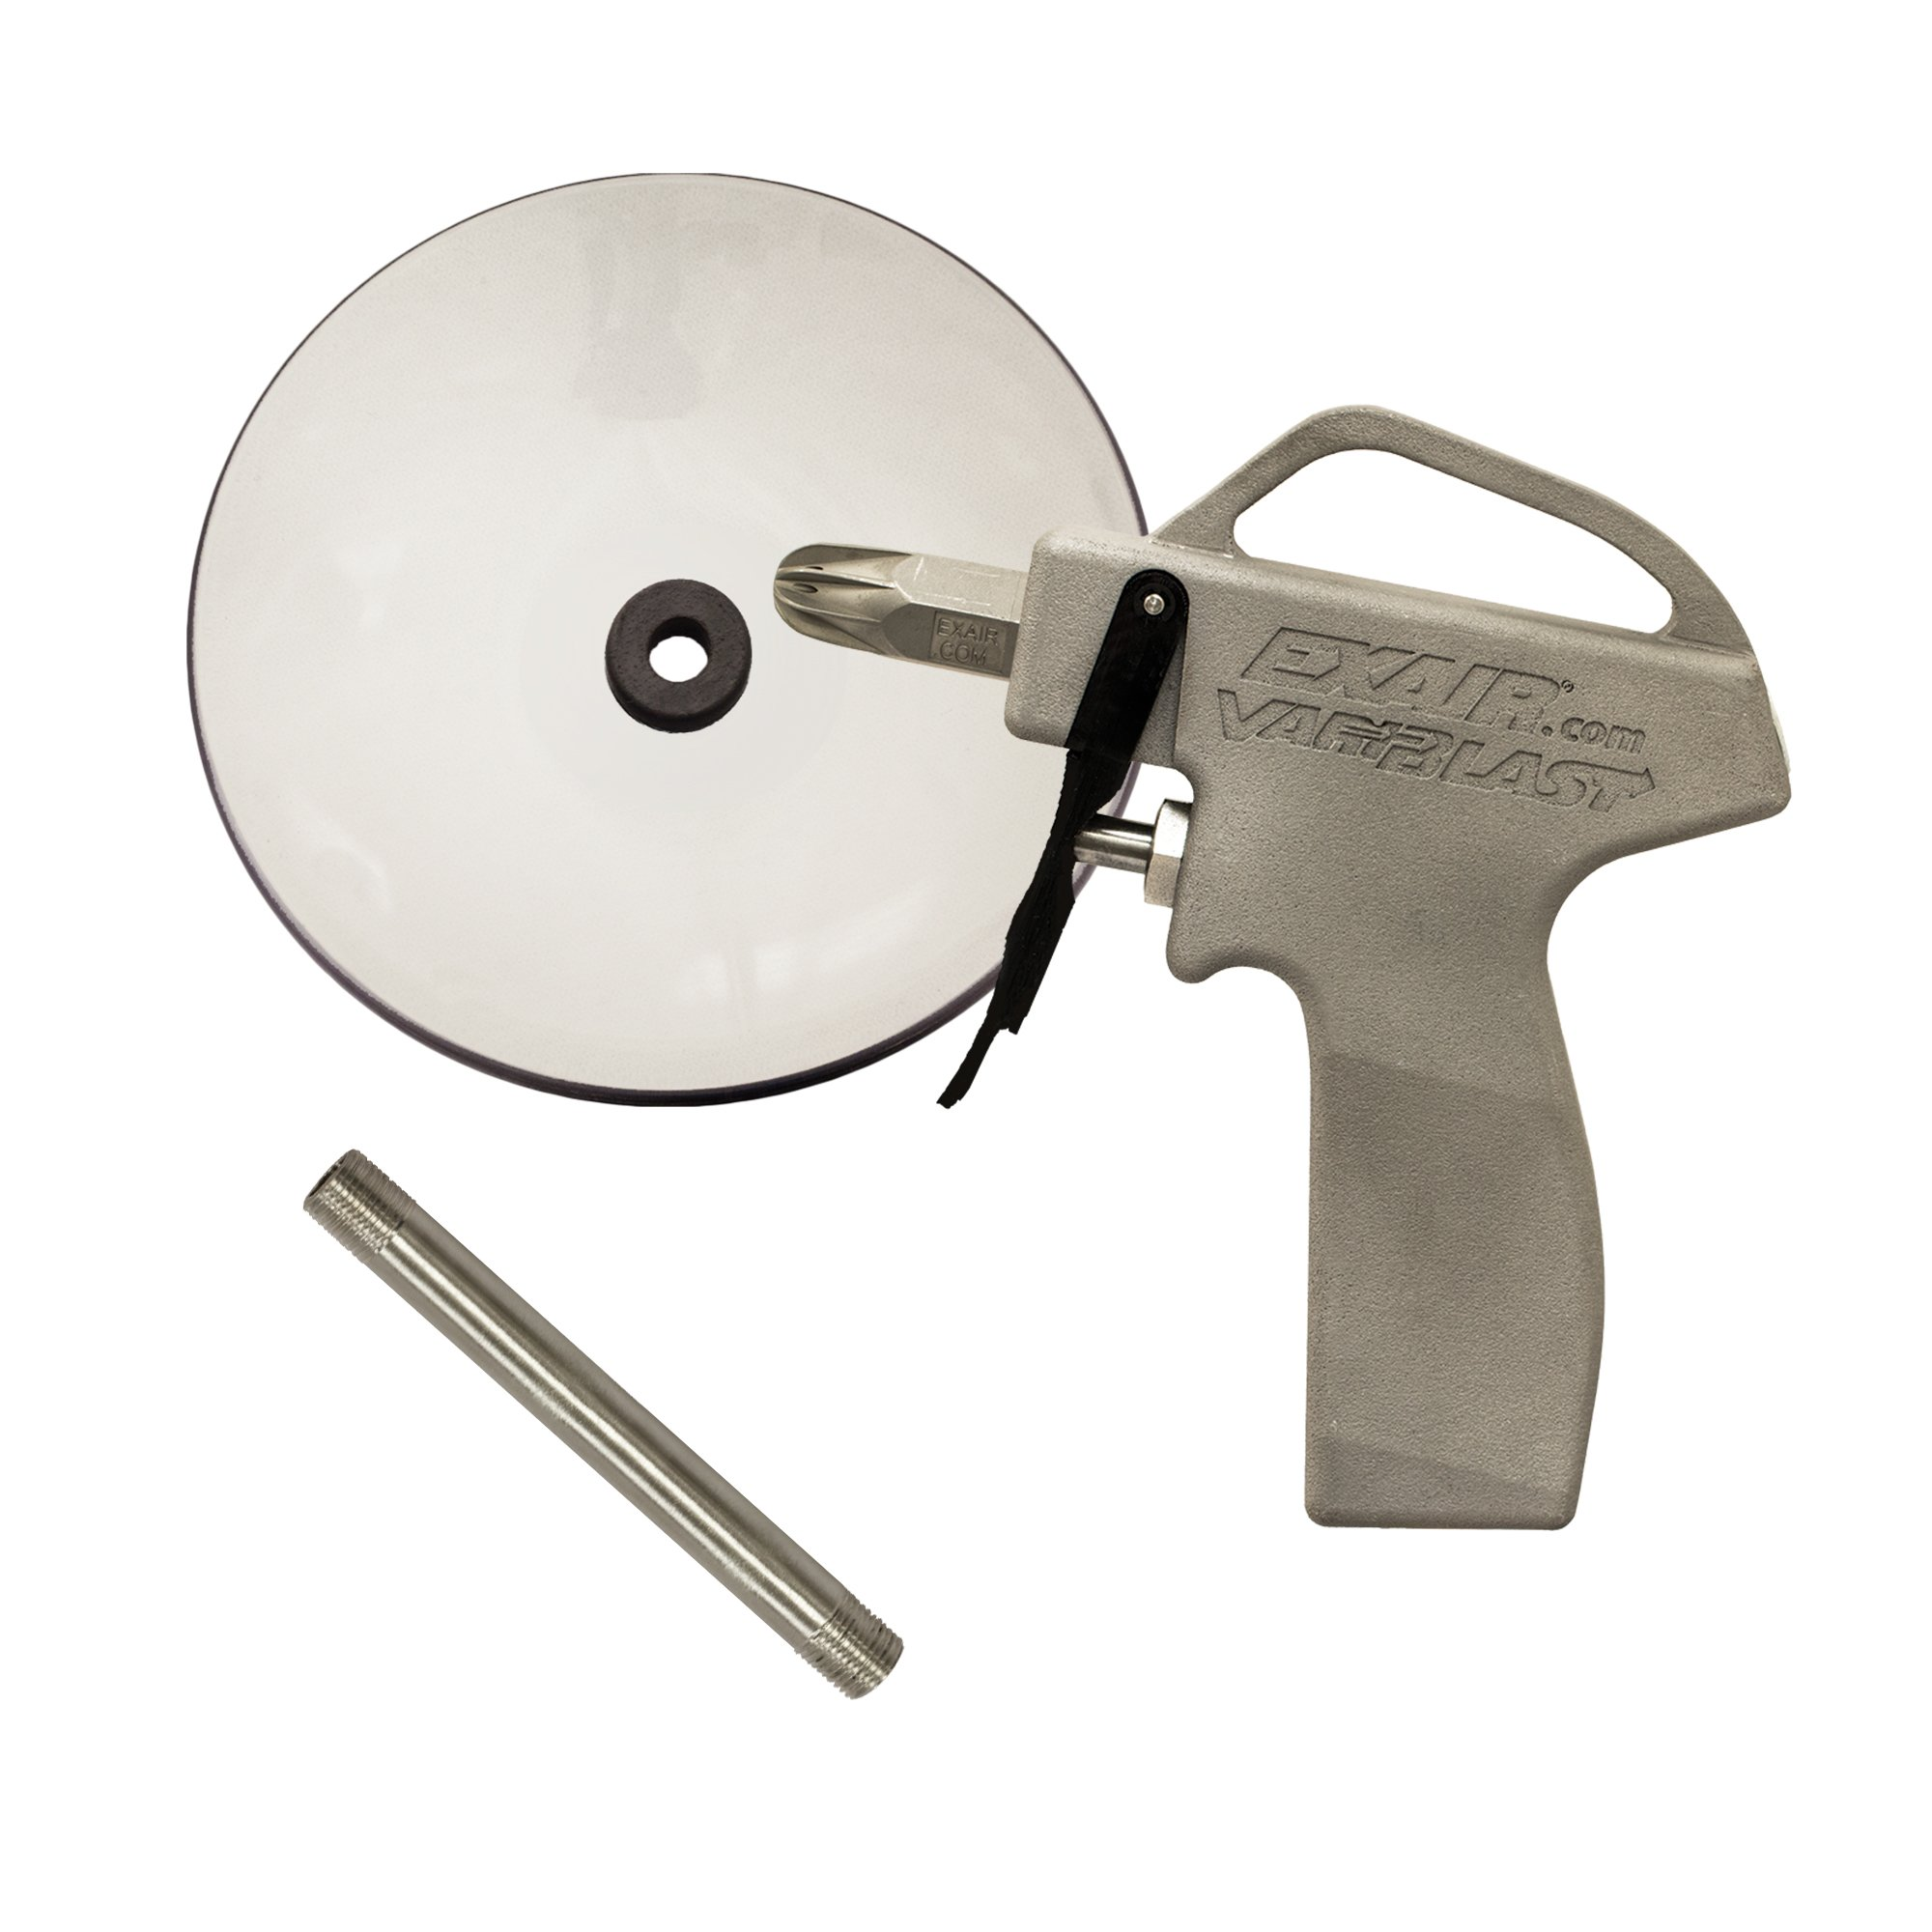 "Model 1699-24-CS VariBlast Compact Safety Air Gun with Model 1103 Air Nozzle, 24"" Alum. Ext Pipe & Chip Shield"